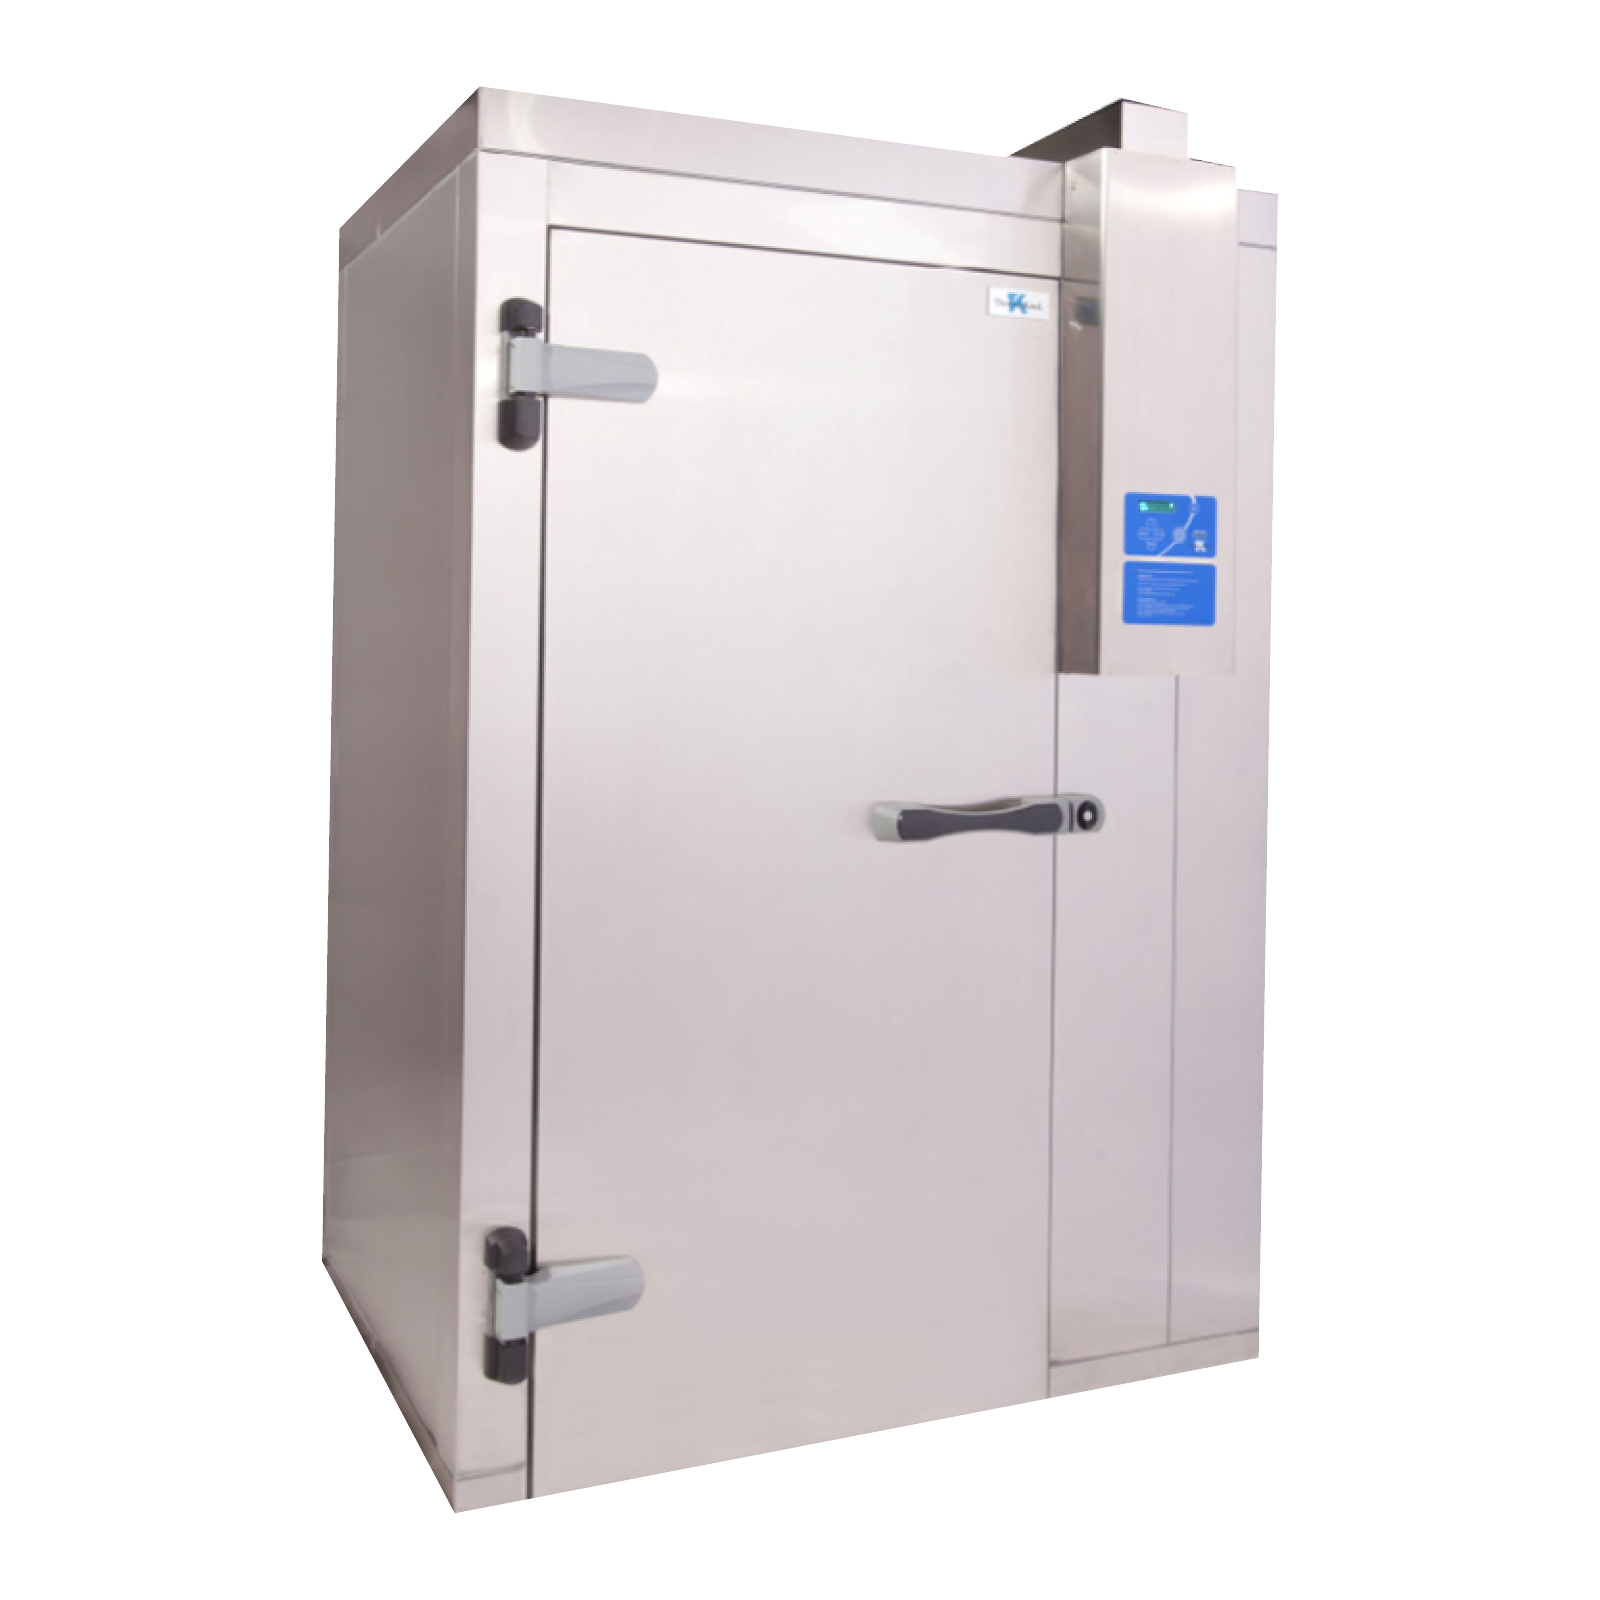 Image of the TK30BC-1 blast chiller by Thermo-Kool